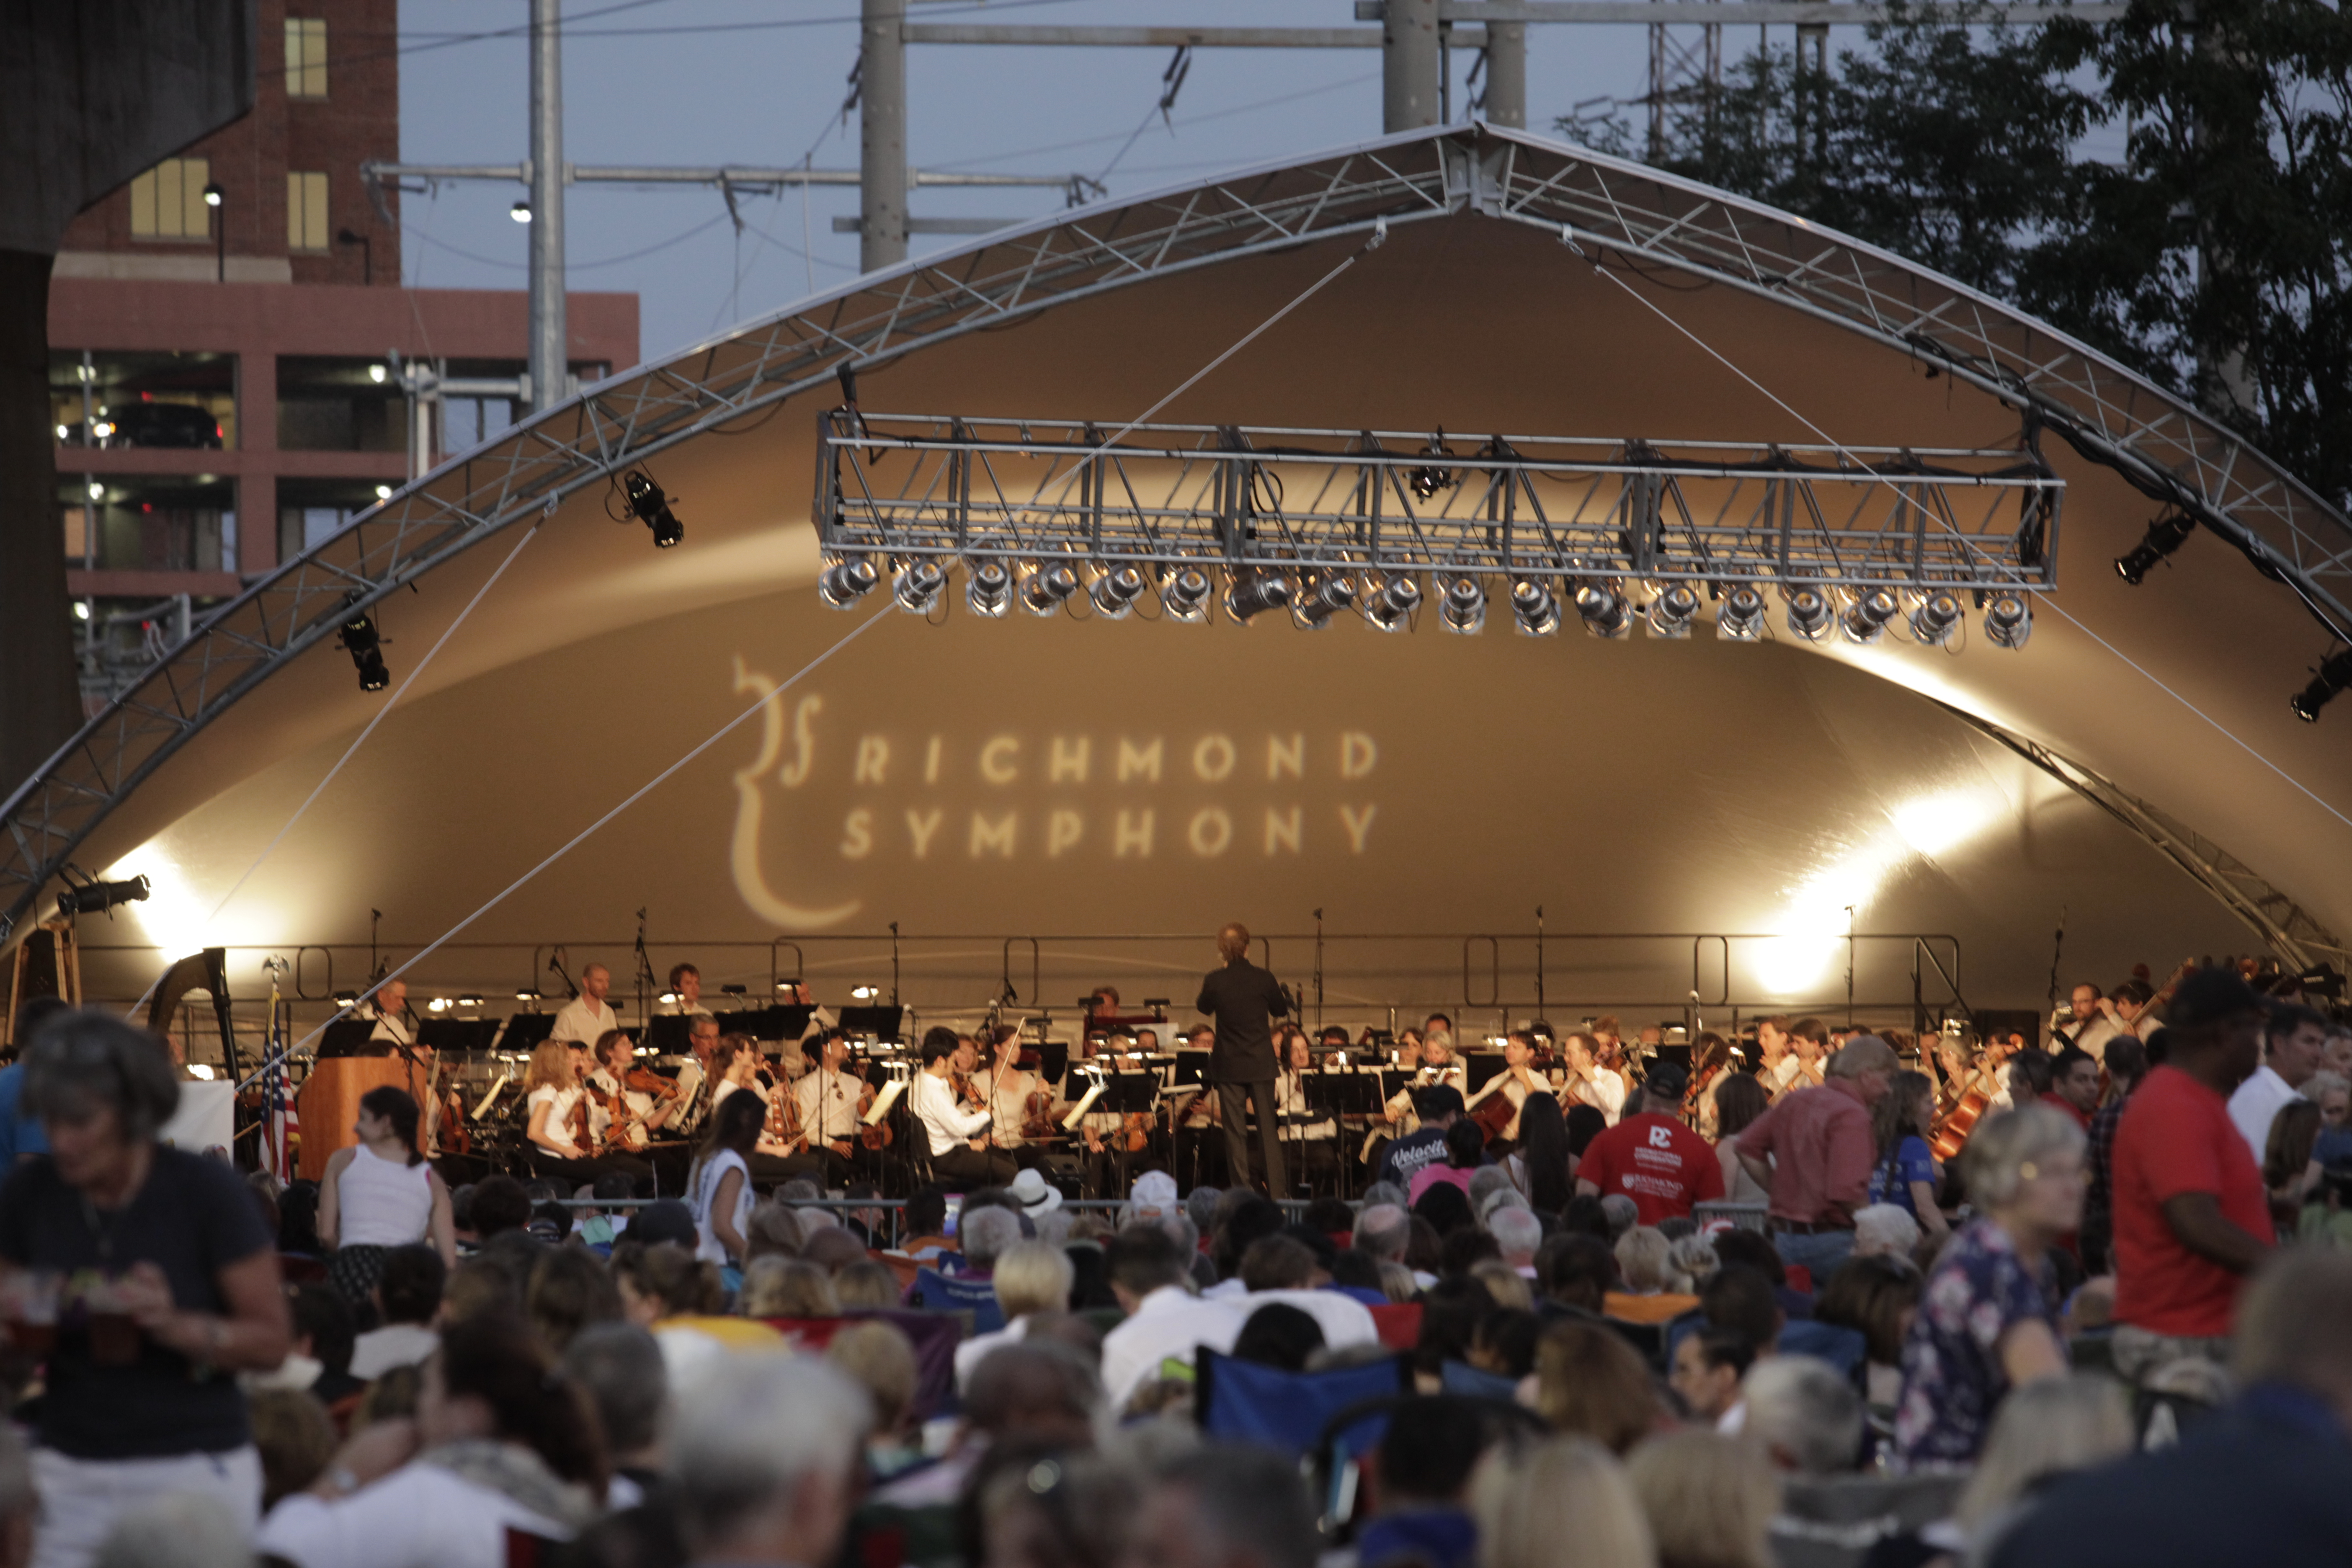 Photo Gallery & The Big Tent / Community Festivals - Richmond Symphony